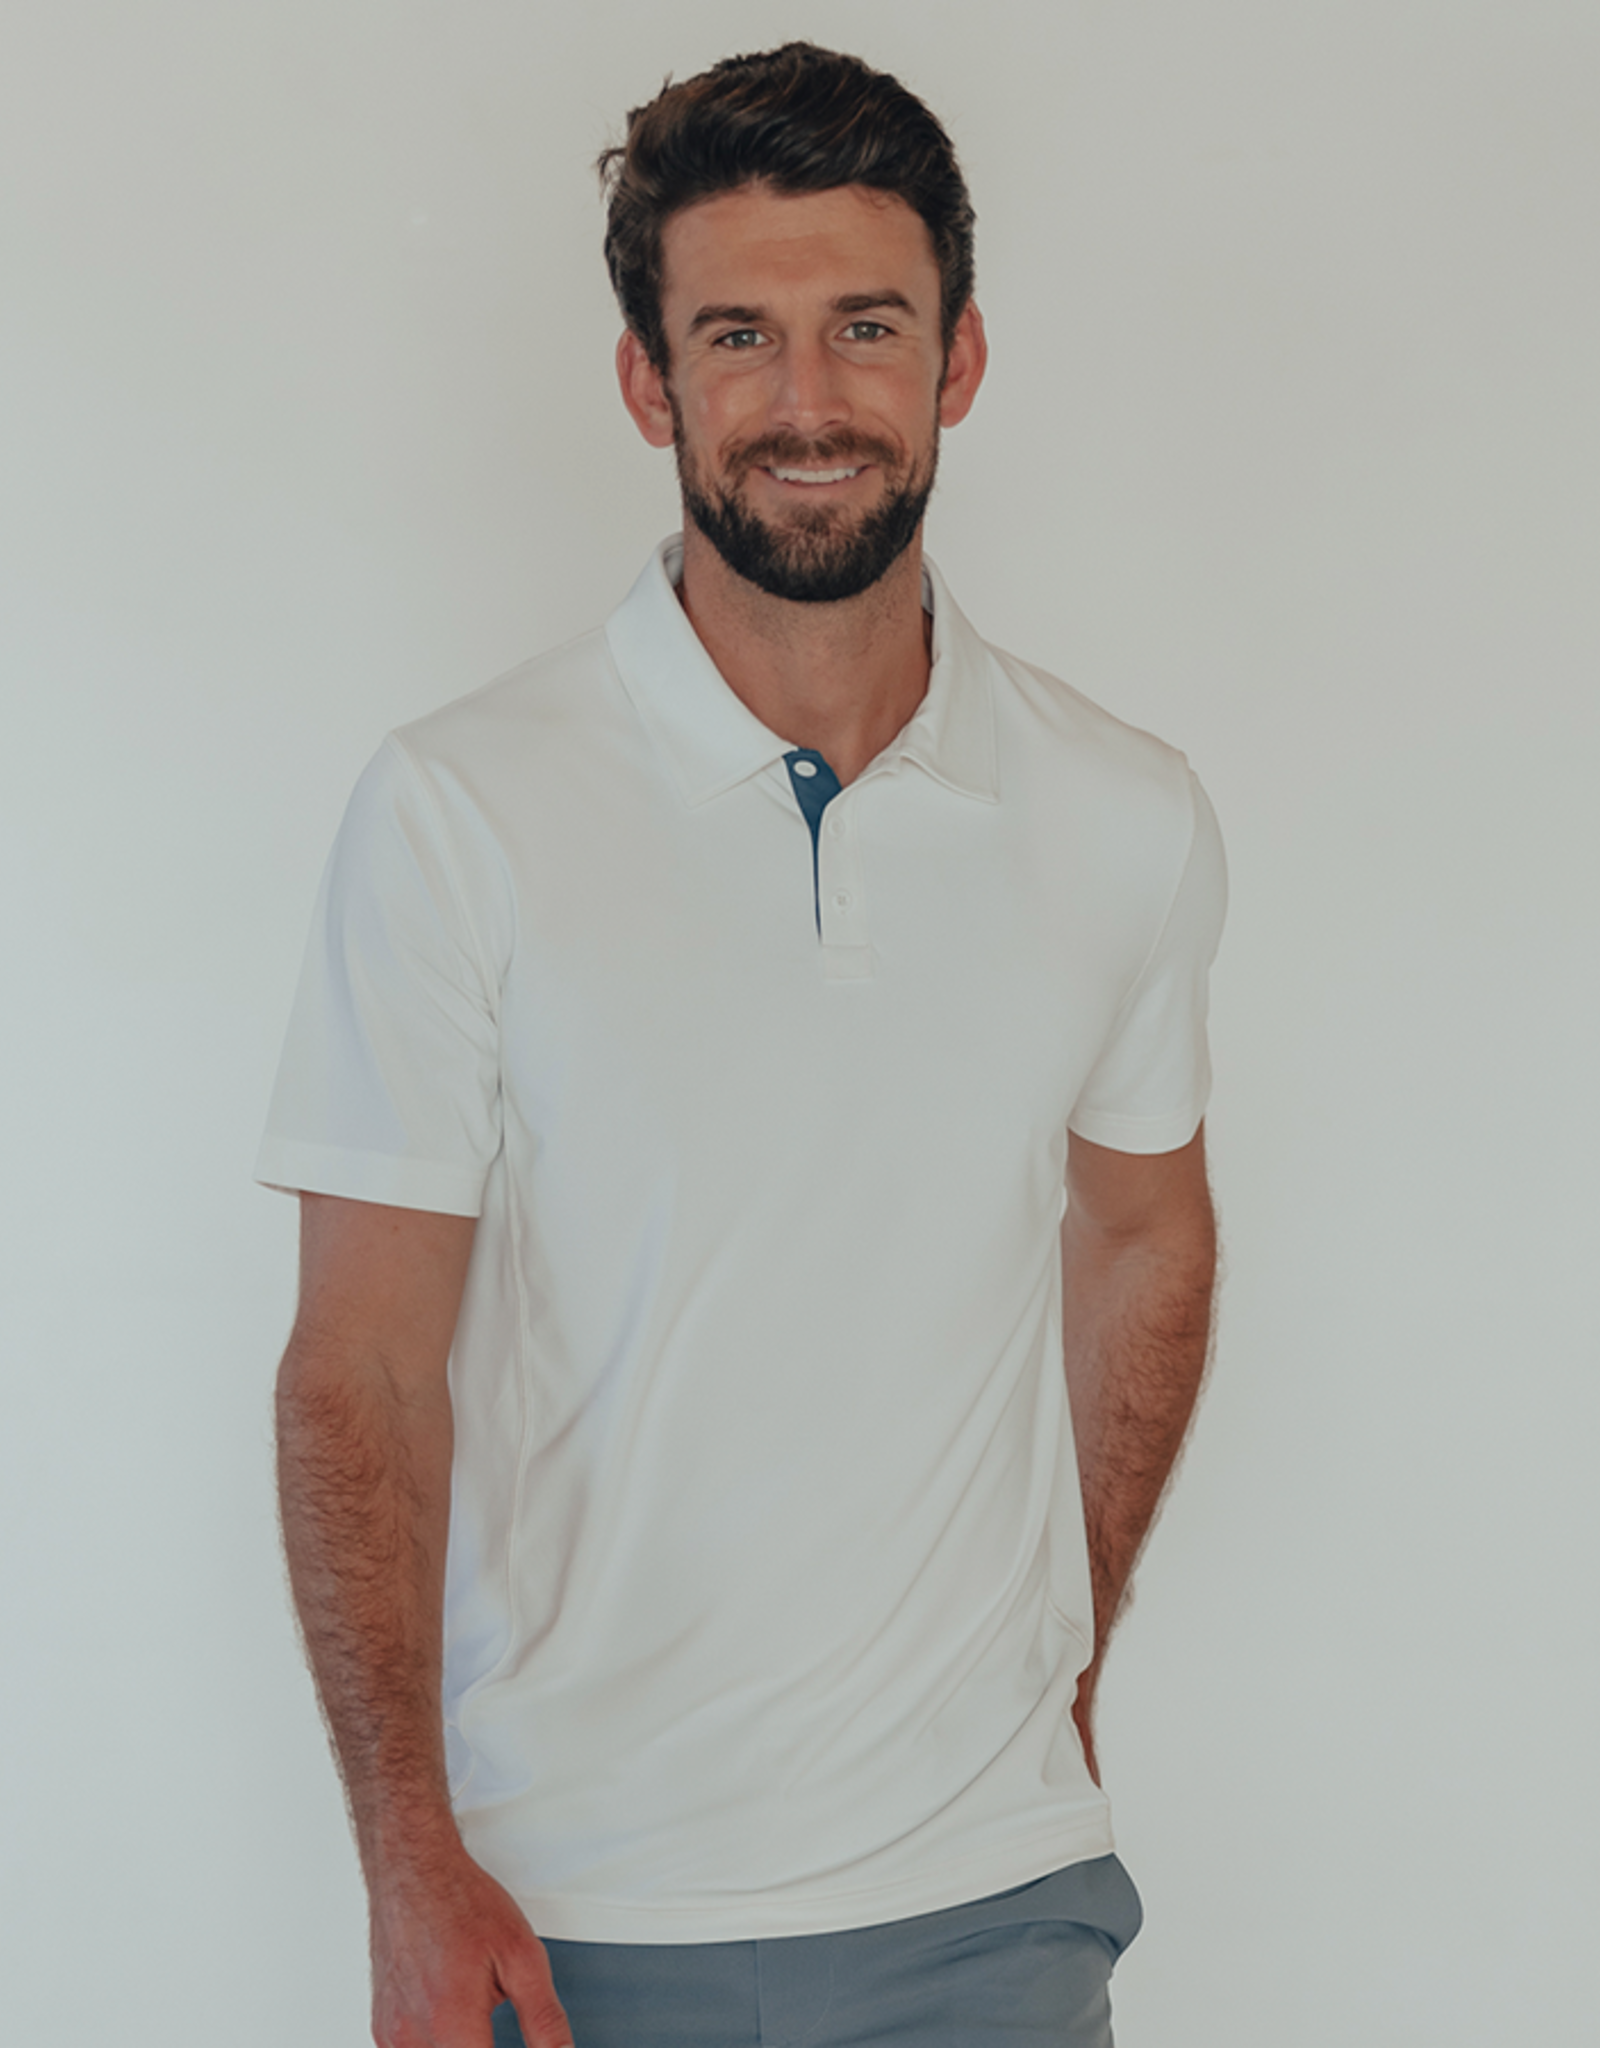 The Normal Brand Cross Backseam Performace Polo